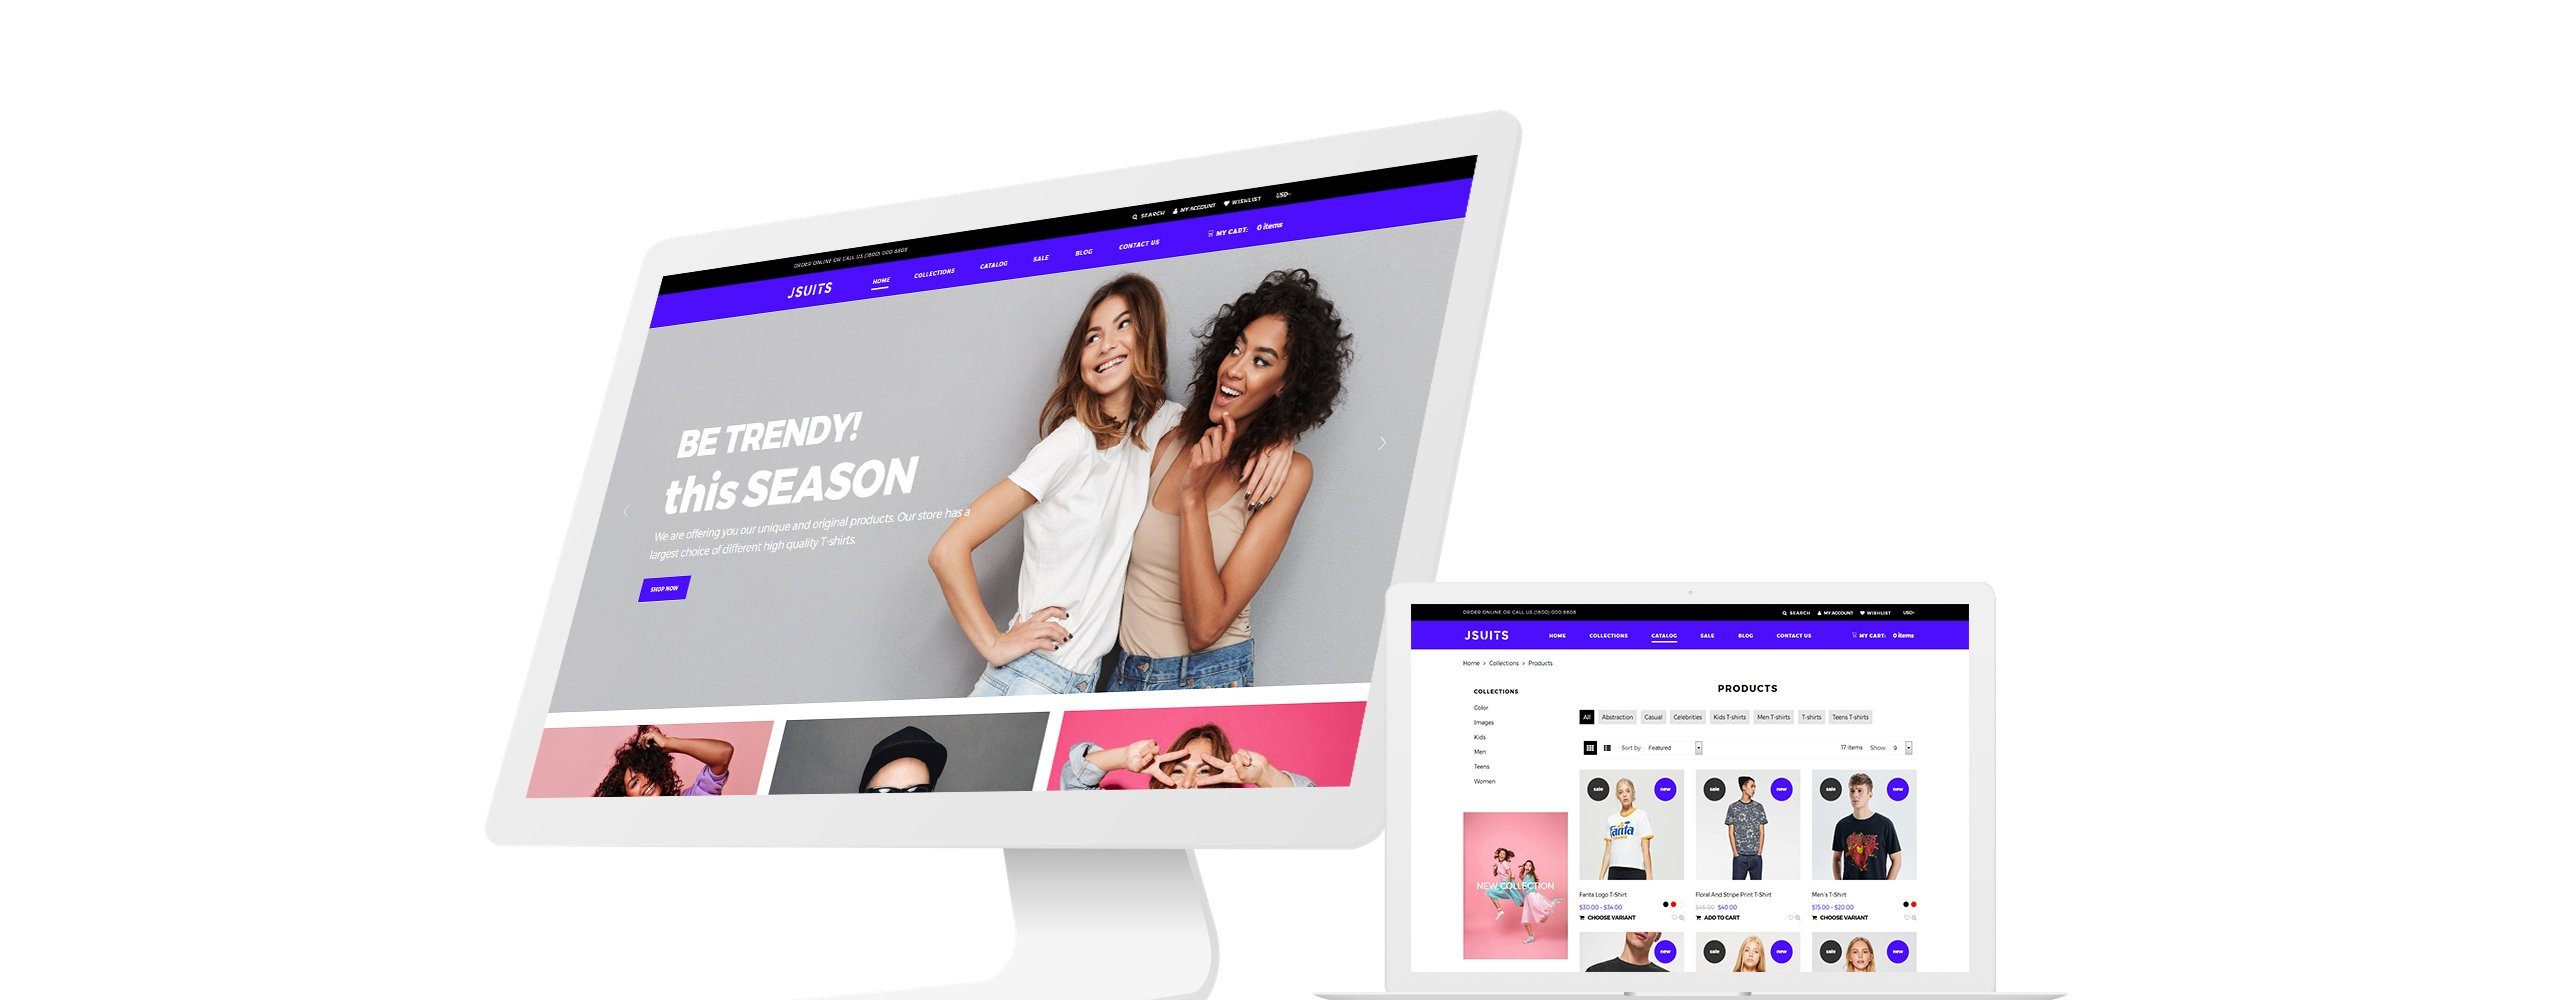 Website Design Template 76138 - shopify